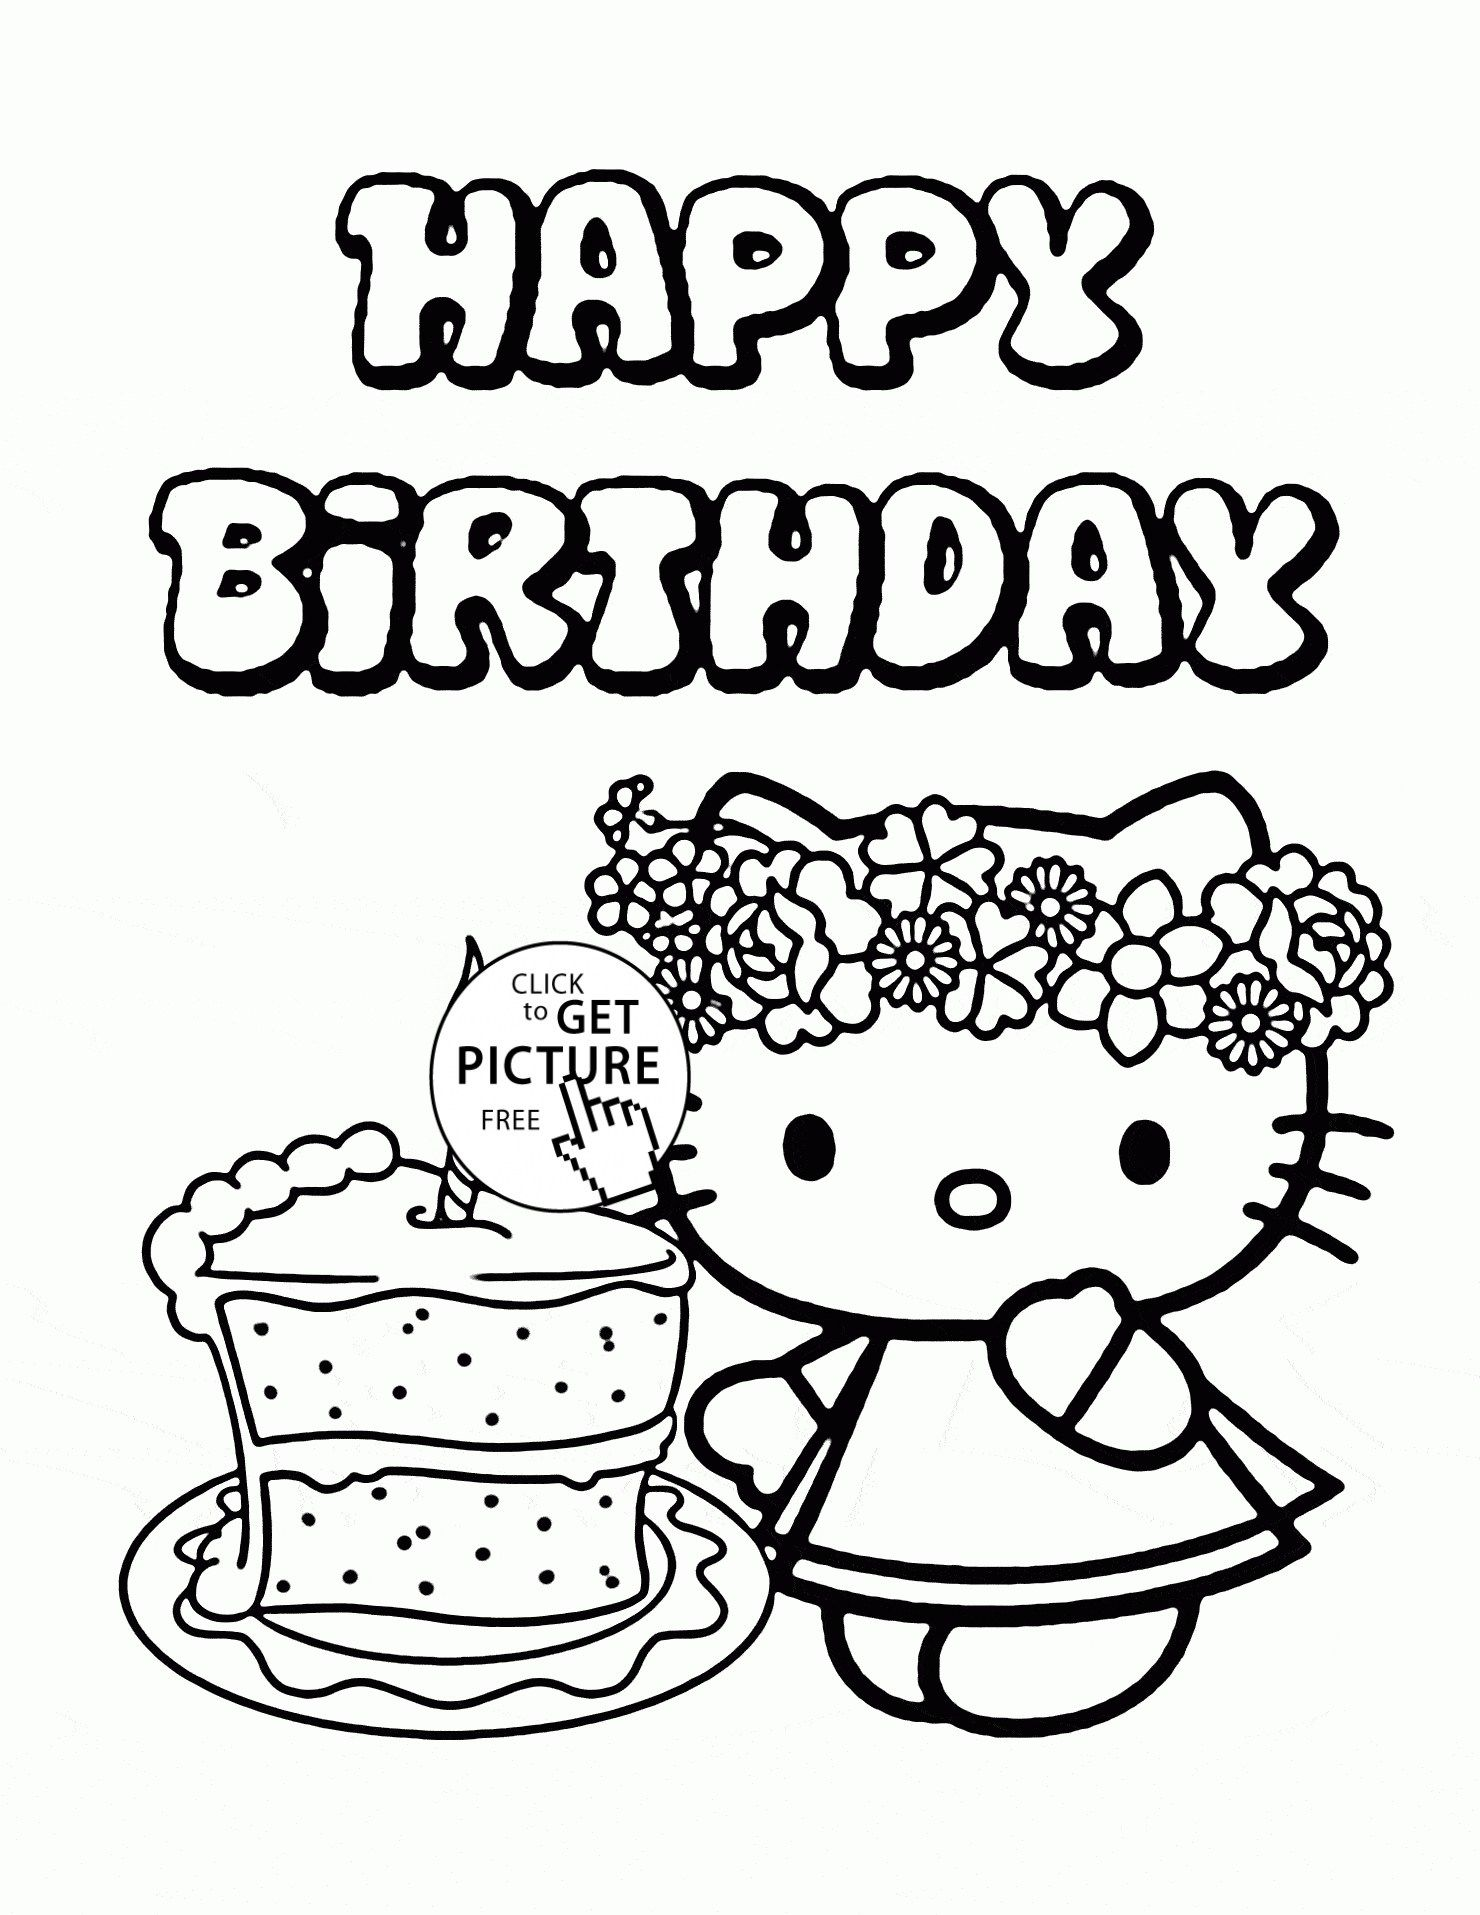 30 marvelous photo of birthday cake coloring pages birthday cake Birthday Cake Ideas 30 marvelous photo of birthday cake coloring pages birthday cake coloring pages hello kitty